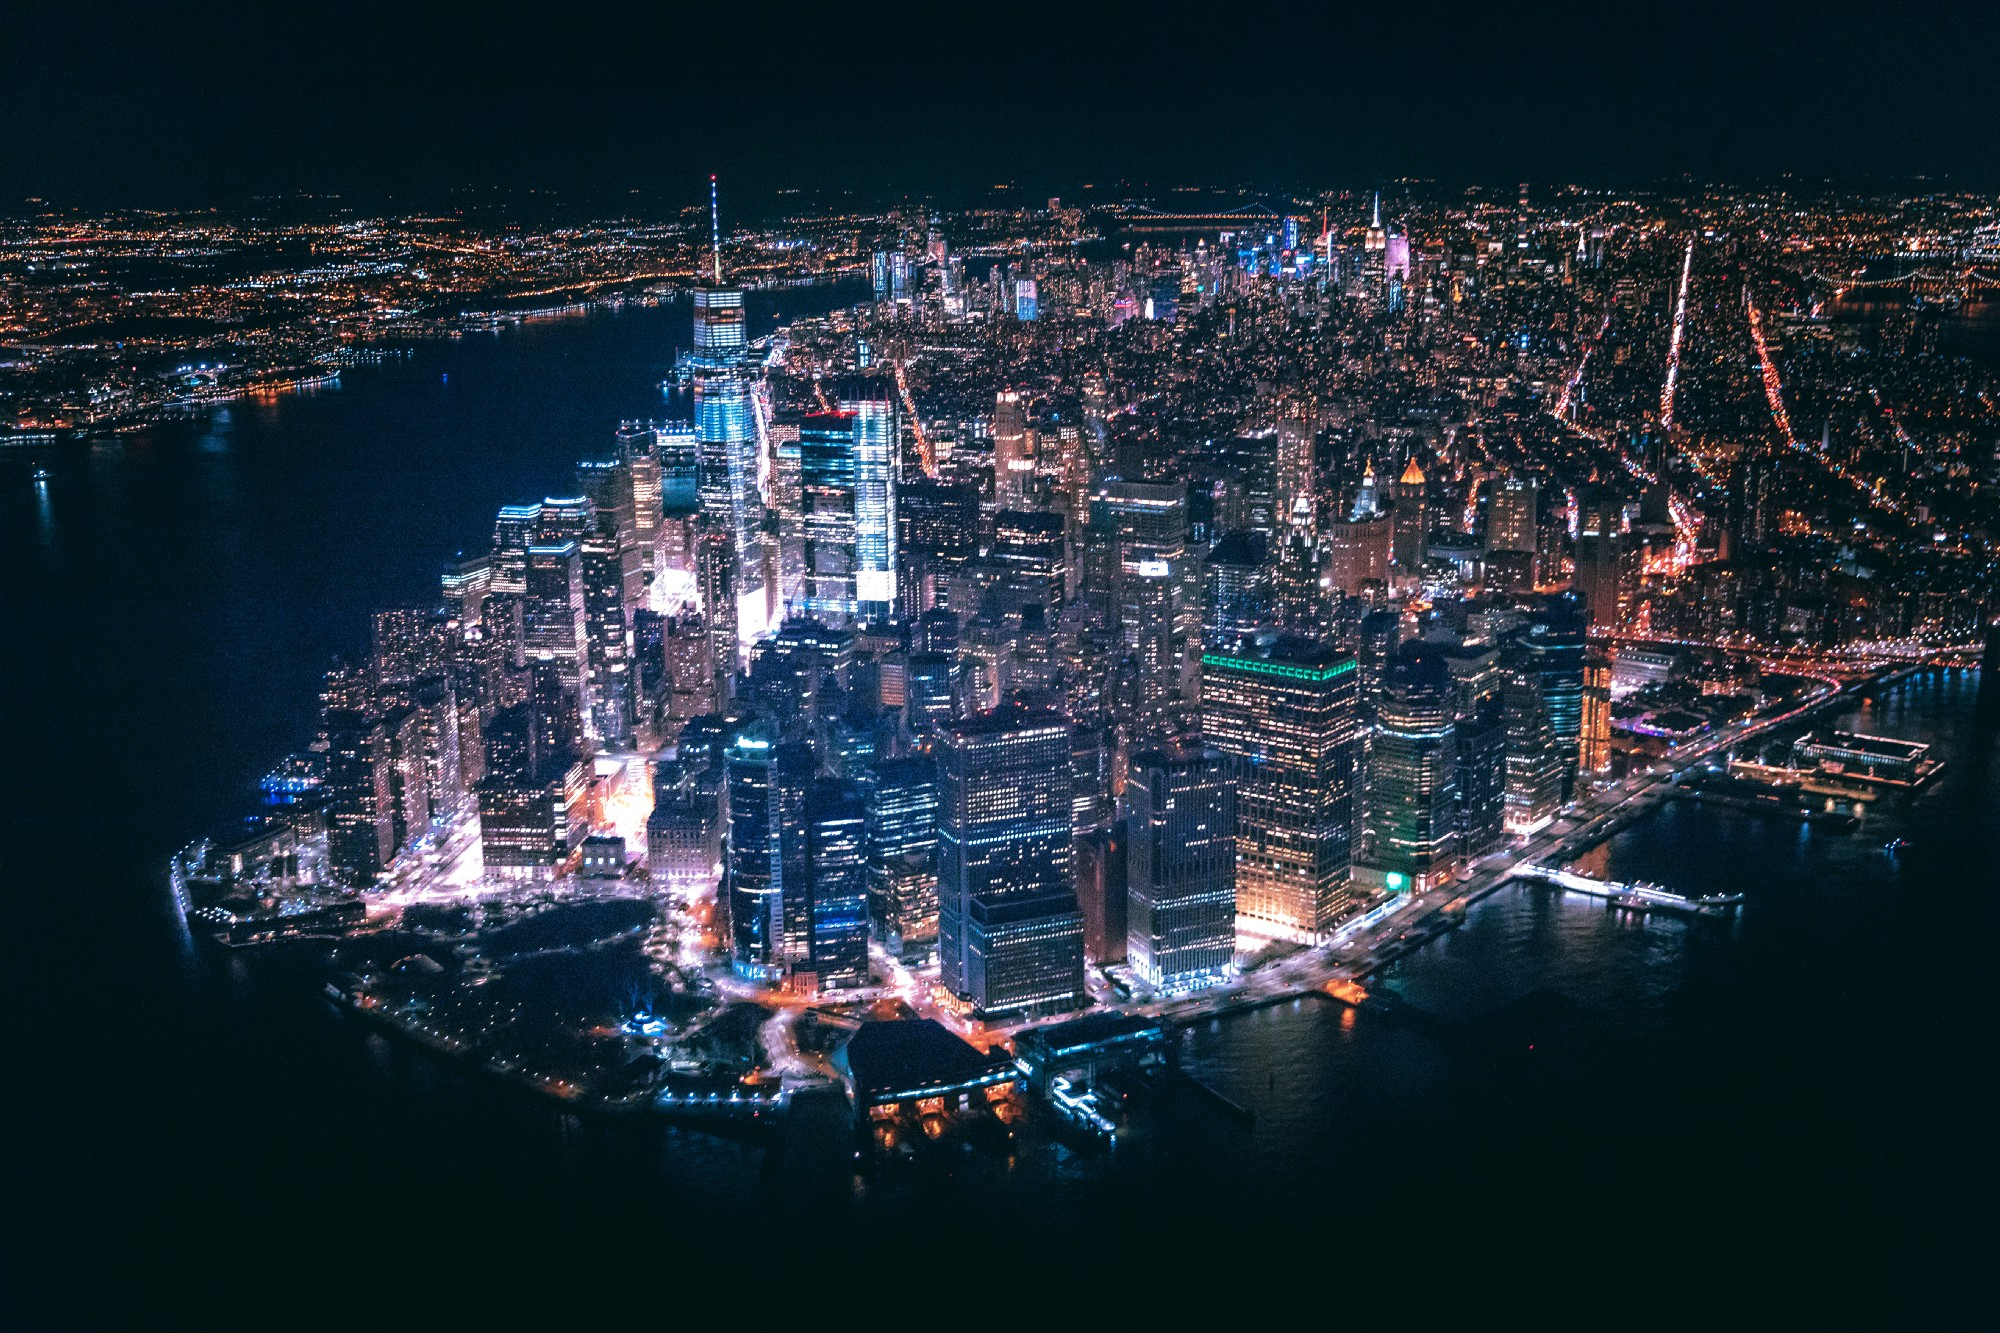 An aerial shot of downtown Manhattan at night.